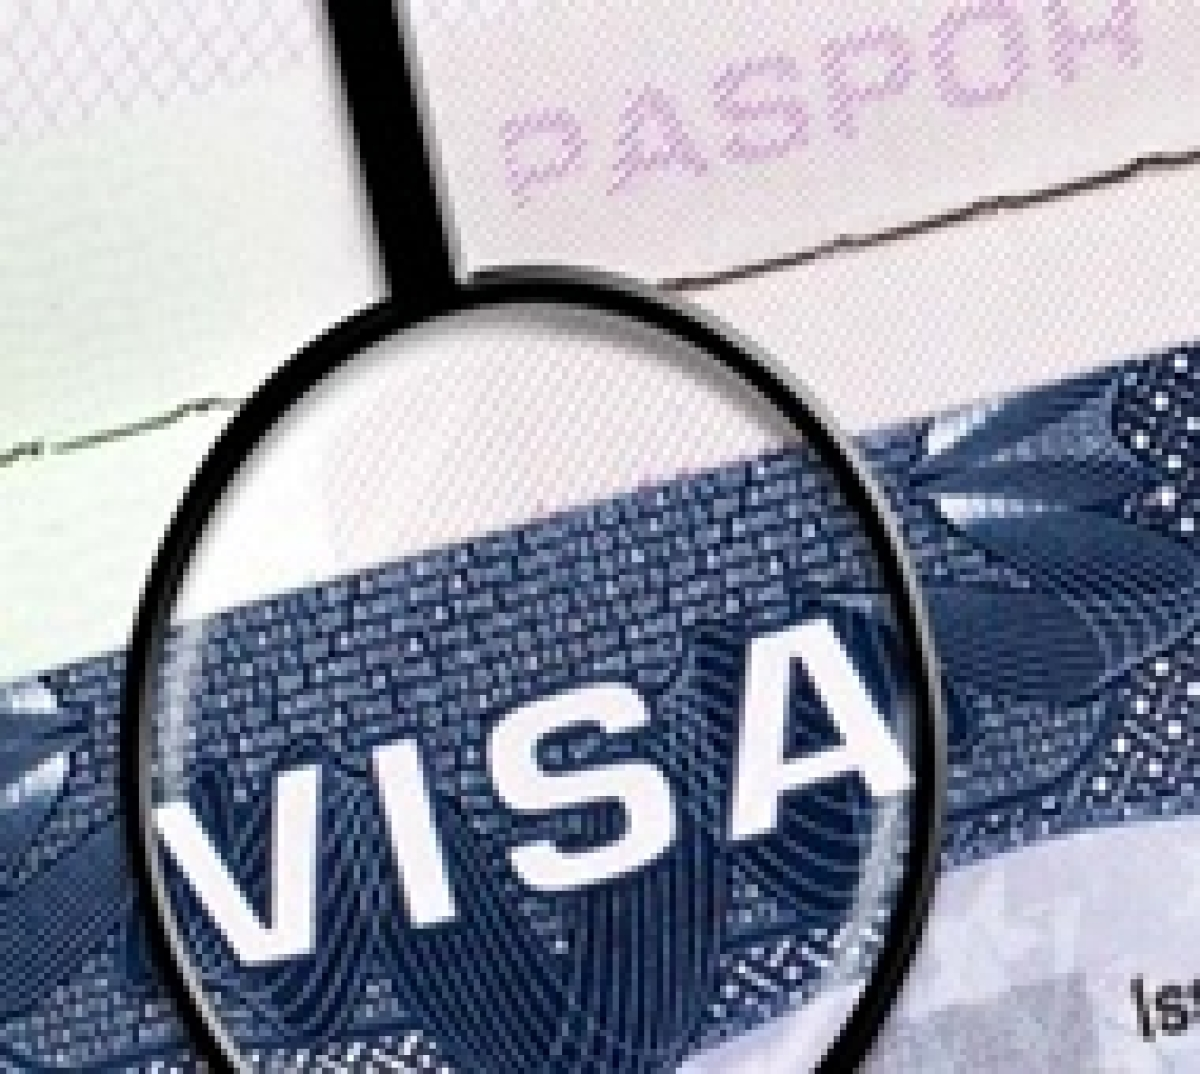 US visa fee hike: Govt against discrimination towards Indian professionals